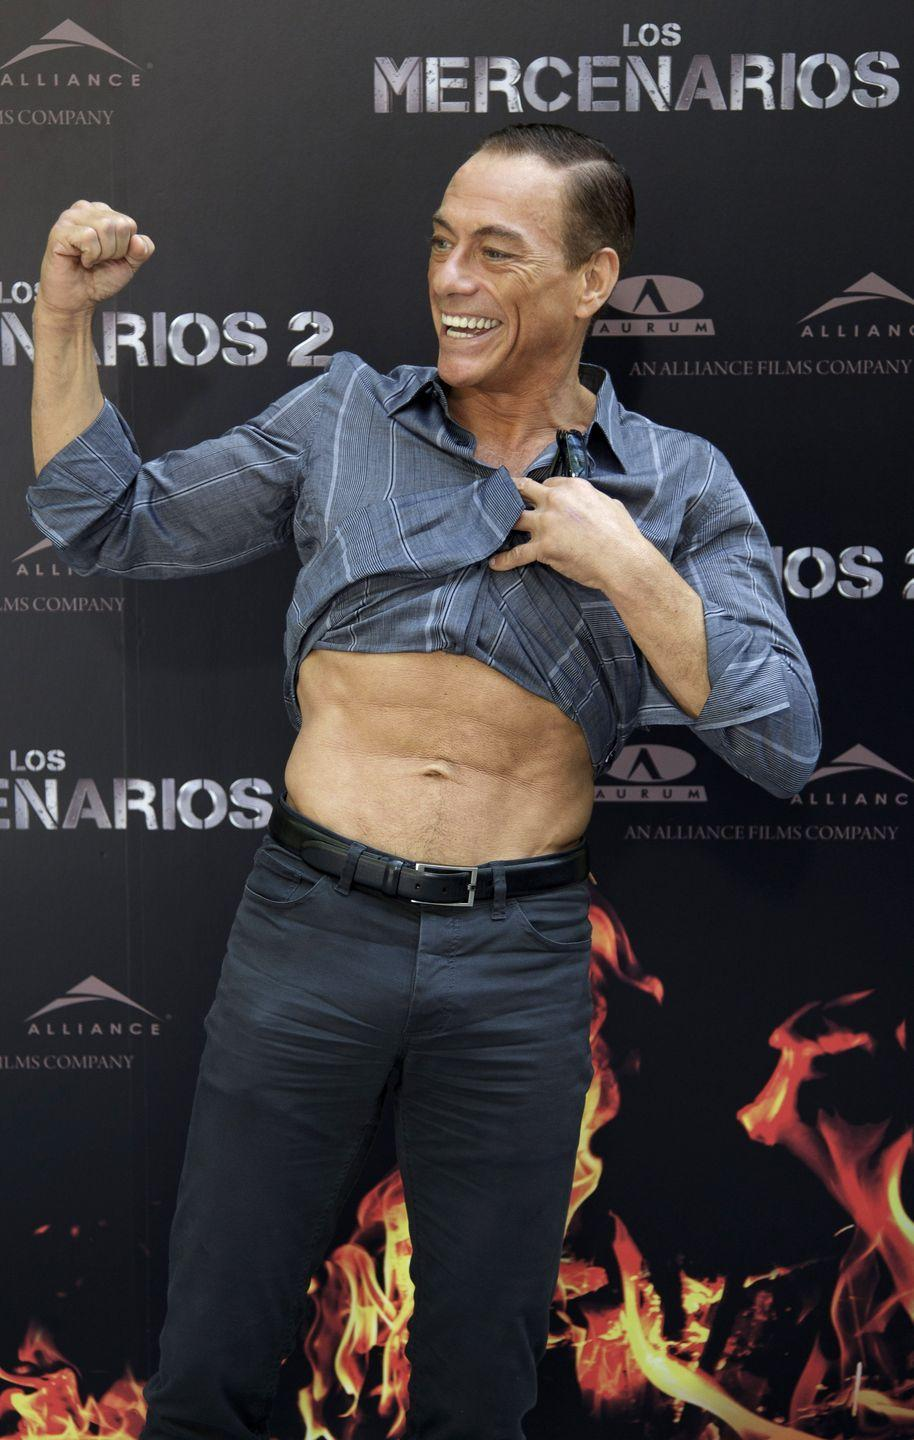 <p>Jean Claude Van Damme may be 60, but he's still got a body that could rival any action star of today—which he proved at <em>The Expendables 2 </em>premiere in 2020.</p>